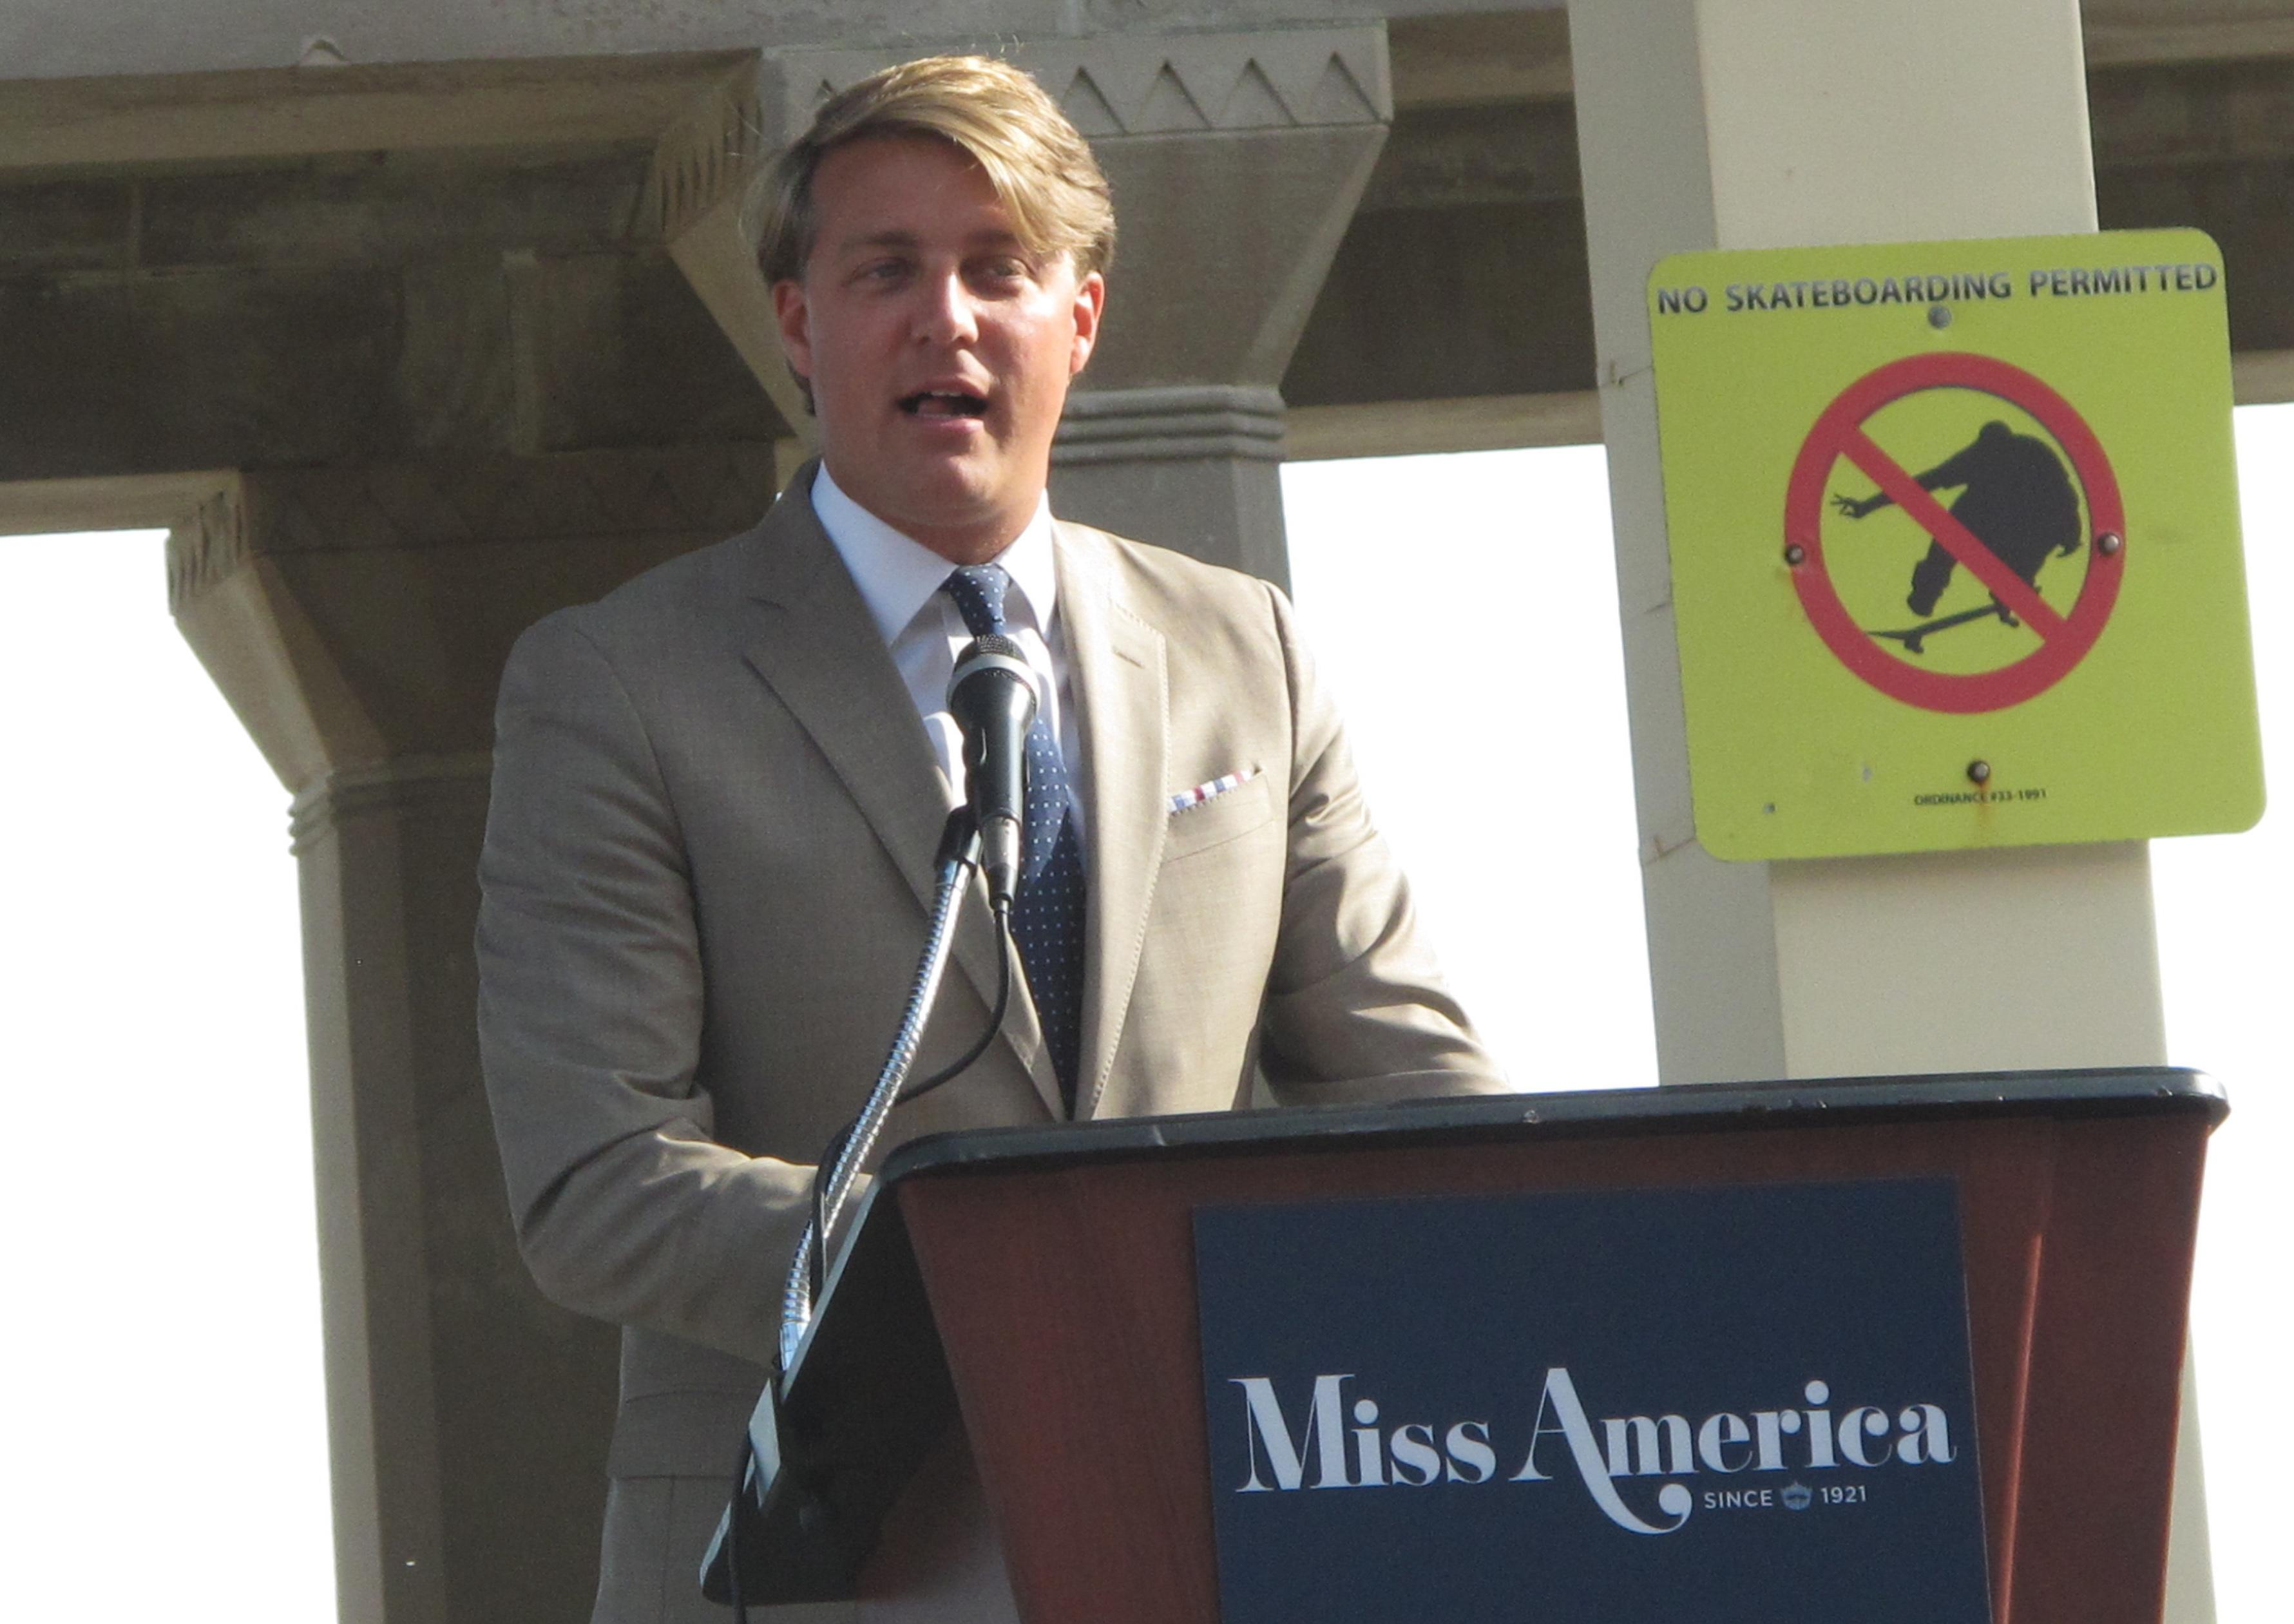 This Aug. 30, 2017 photo shows Josh Randle, president of the Miss America Organization, speaking at a welcoming ceremony for pageant contestants in Atlantic City N.J. On Saturday Dec. 23, 2017, Randle resigned from the organization in the wake of an email scandal in which top leaders of the group ridiculed former Miss Americas, including comments about their appearance, intellect and sex lives. The group's CEO was suspended on Friday. (AP Photo/Wayne Parry)